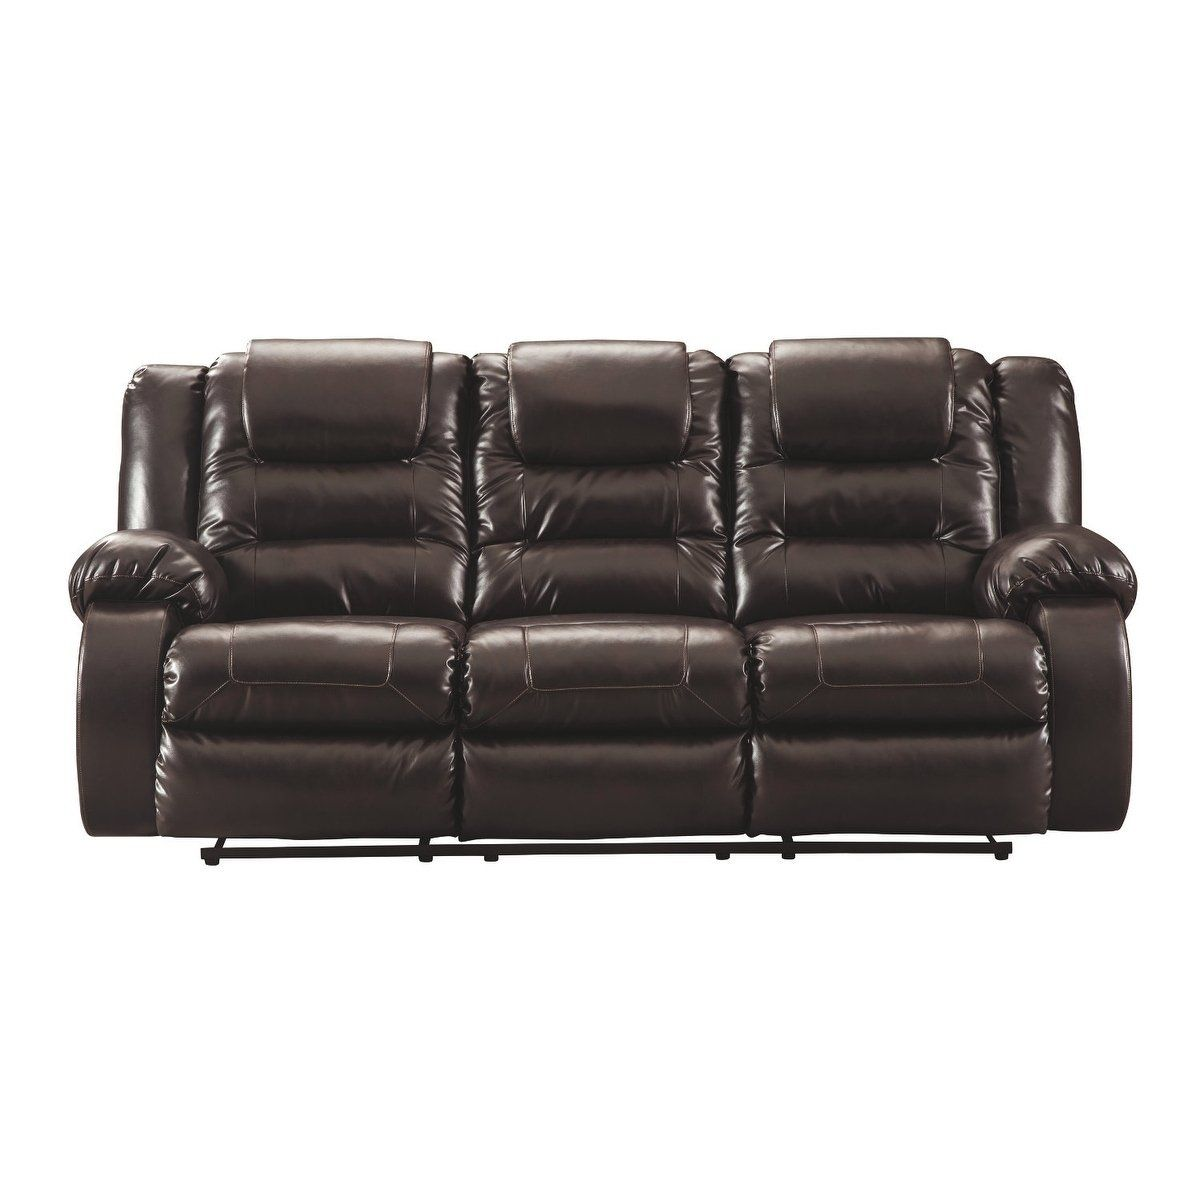 Wondrous Signature Design By Ashley Vacherie Chocolate Reclining Sofa Gmtry Best Dining Table And Chair Ideas Images Gmtryco